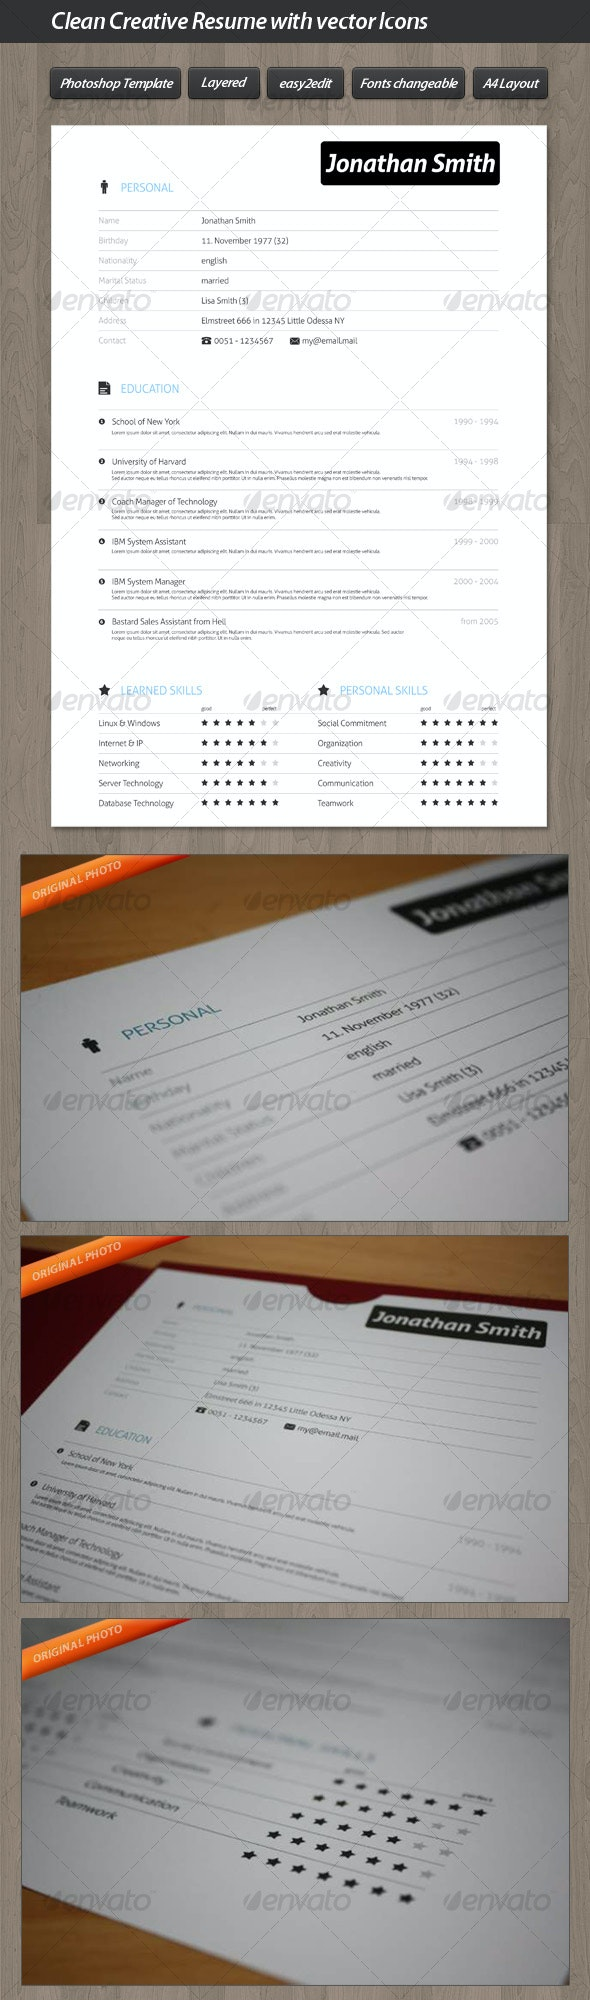 Clean Creative Resume with Vector Icons - Resumes Stationery